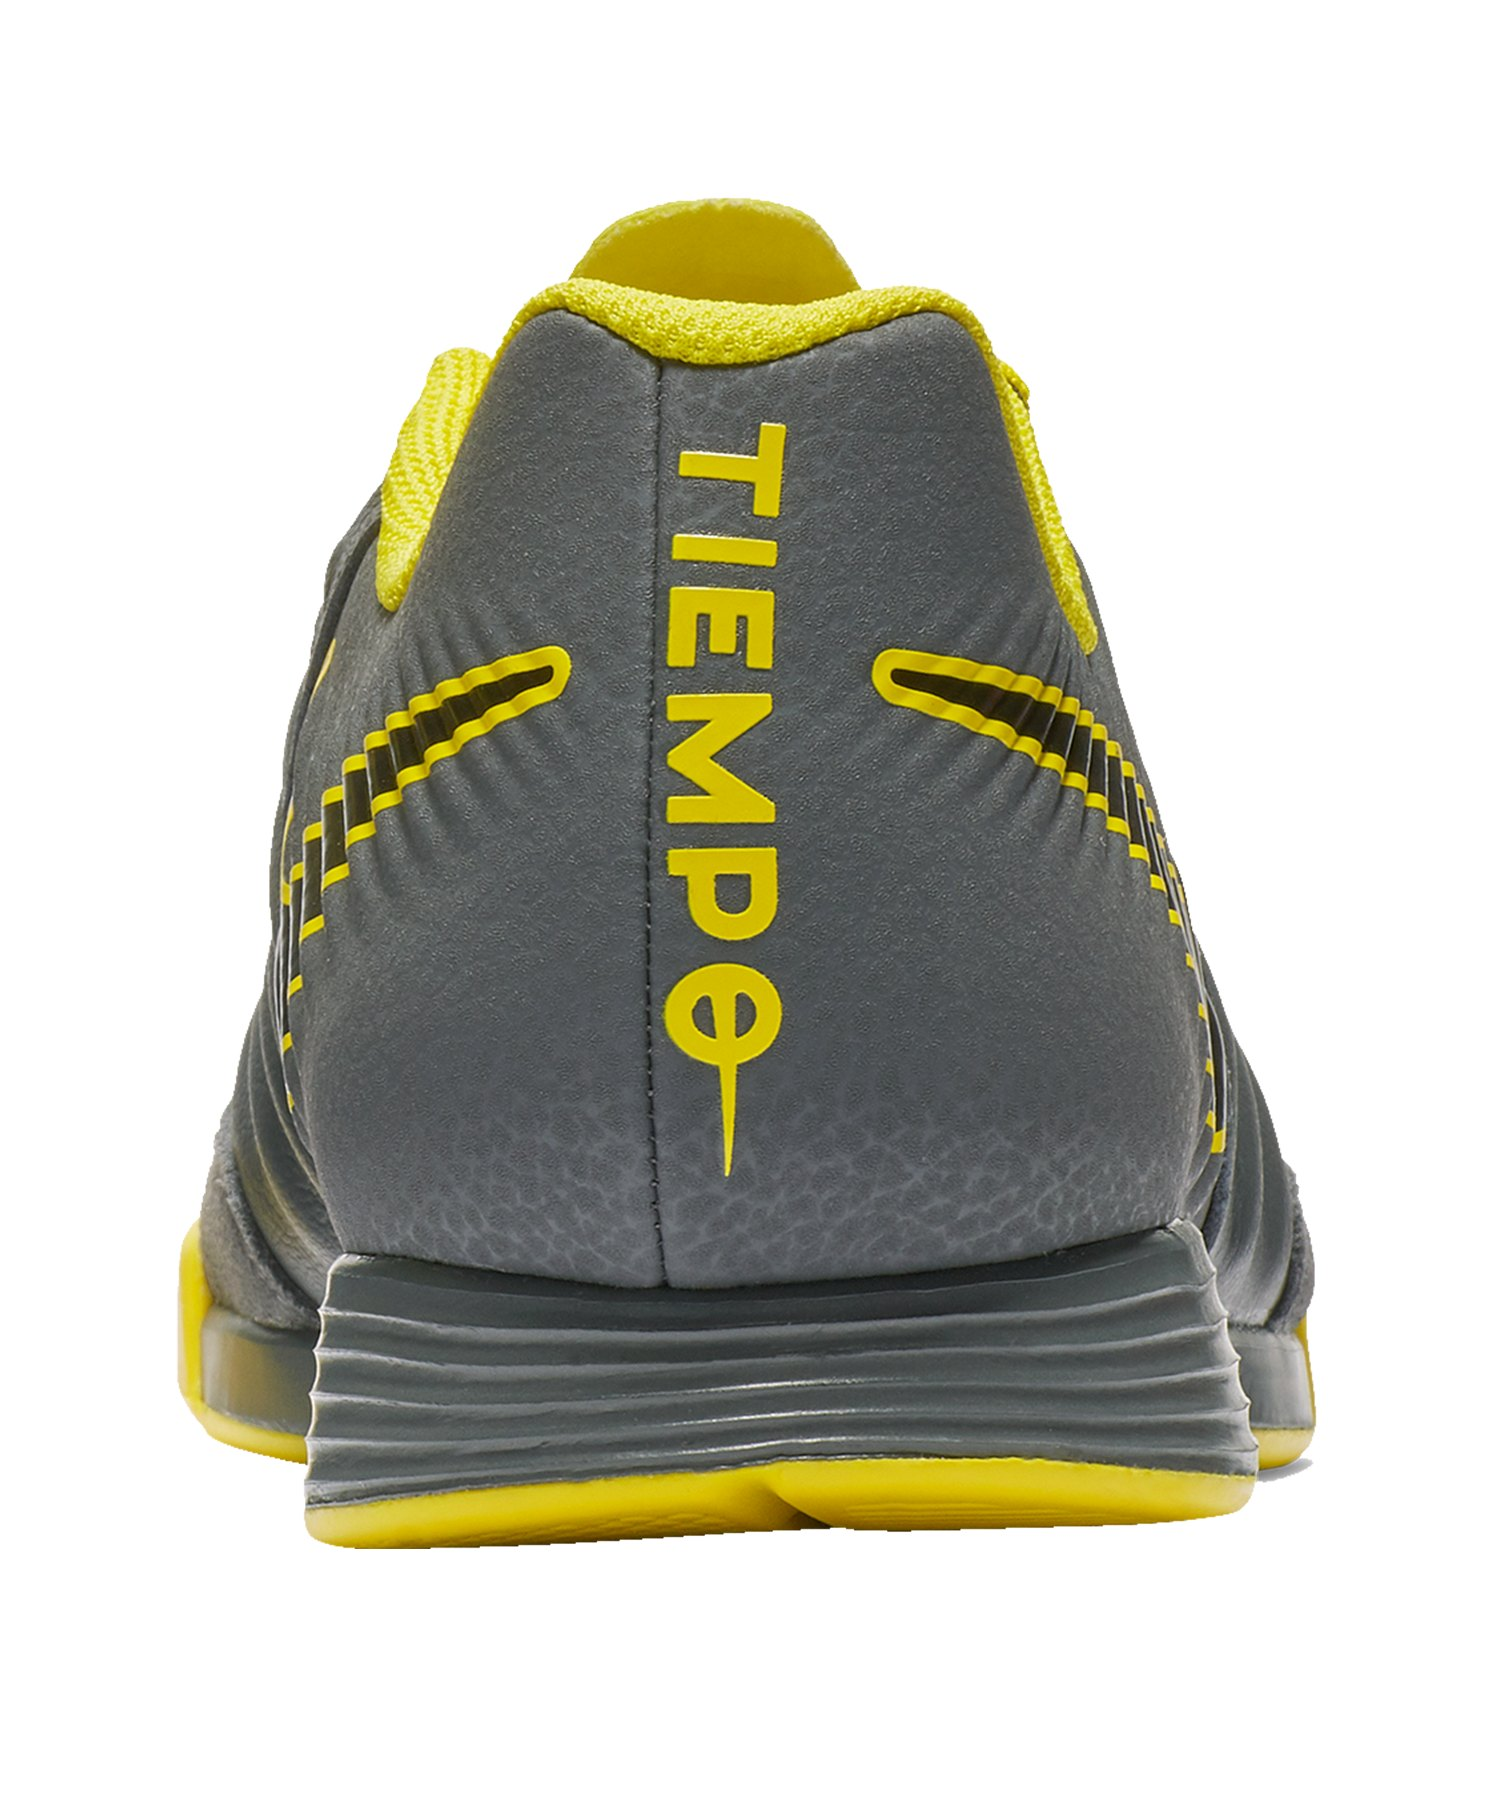 good professional sale retail prices Nike Tiempo LegendX VII Academy IC Grau Gelb F070